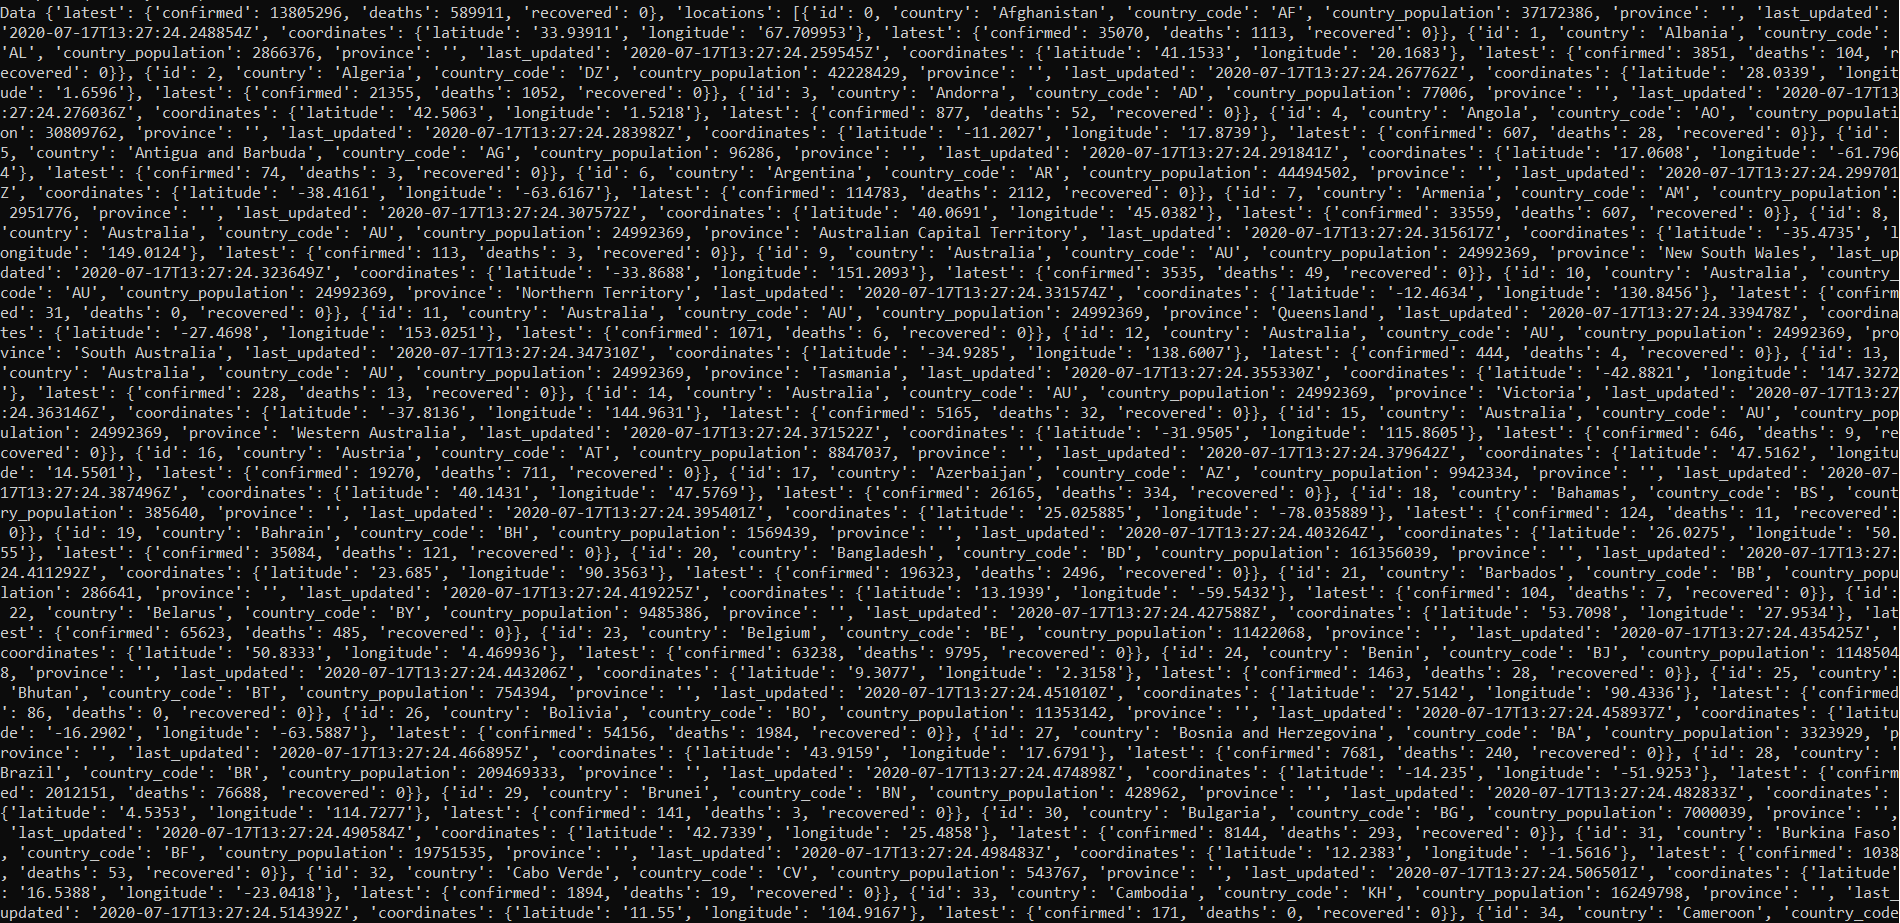 Country-wise Covid Data in the Json form